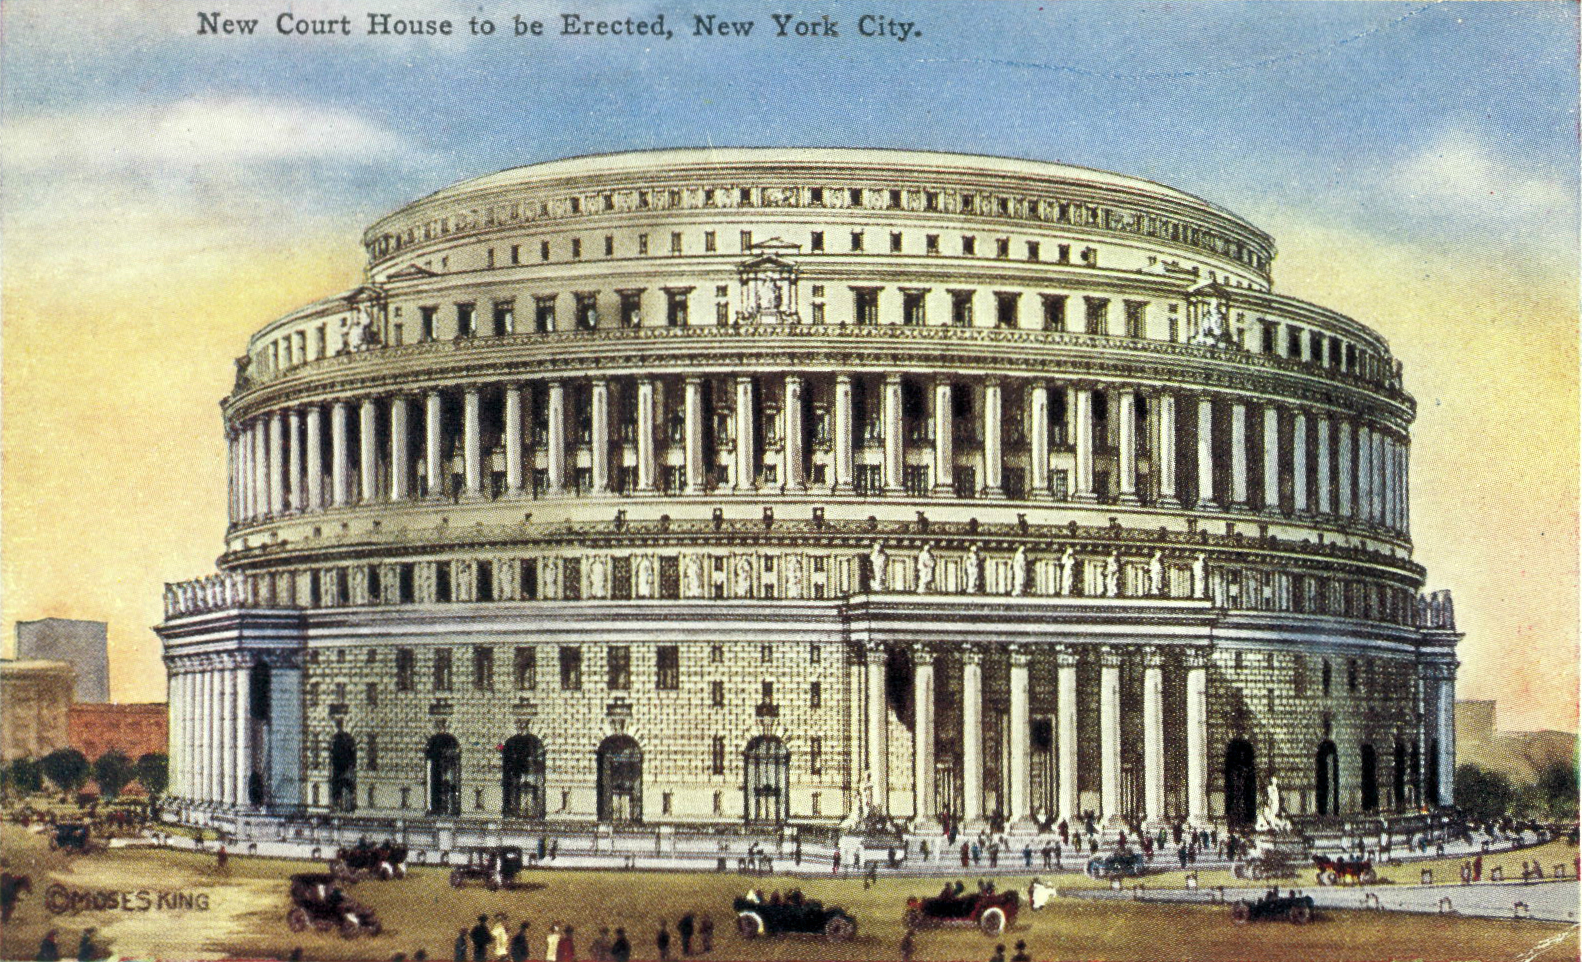 Circular design of New York Courthouse that was never built